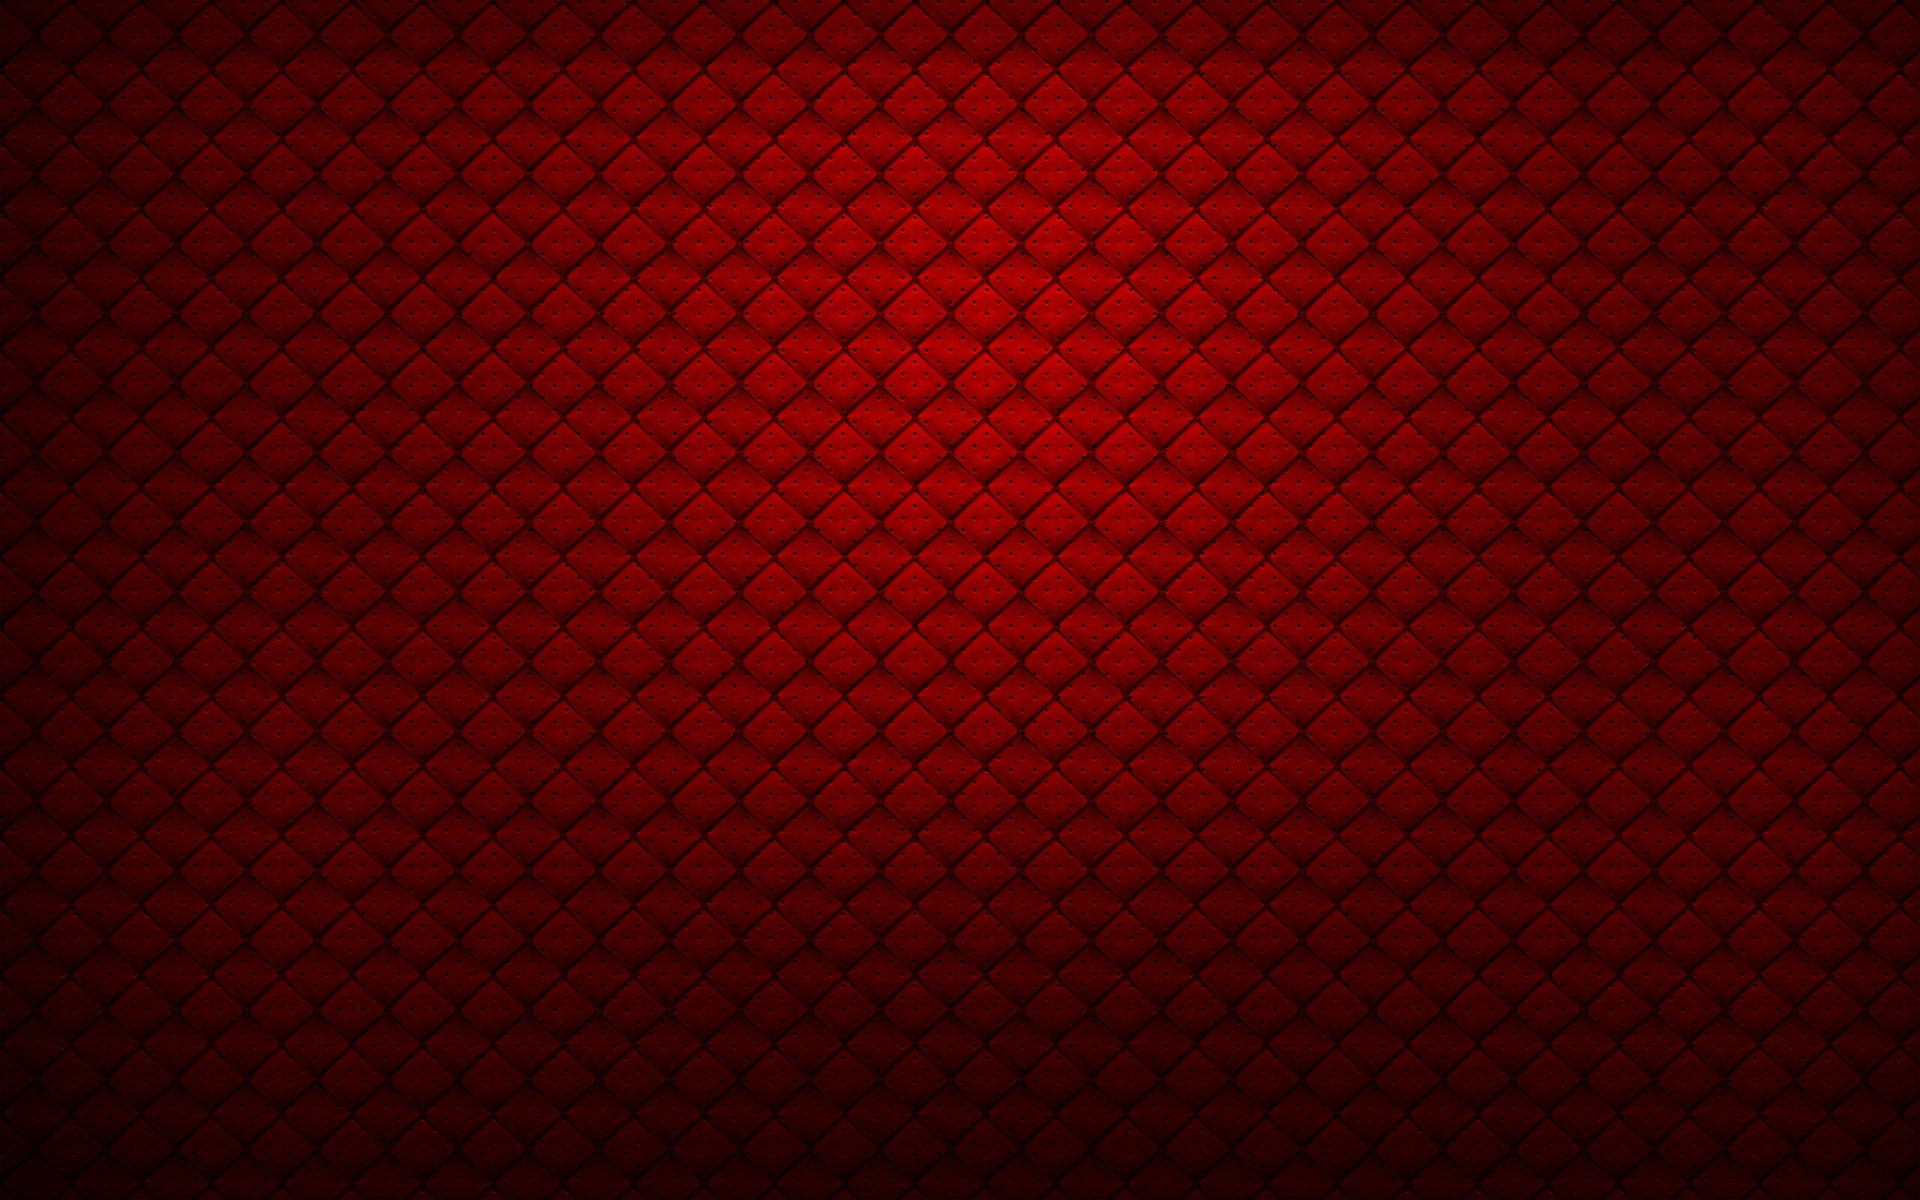 Red Tiles Wallpapers Red Tiles Stock Photos